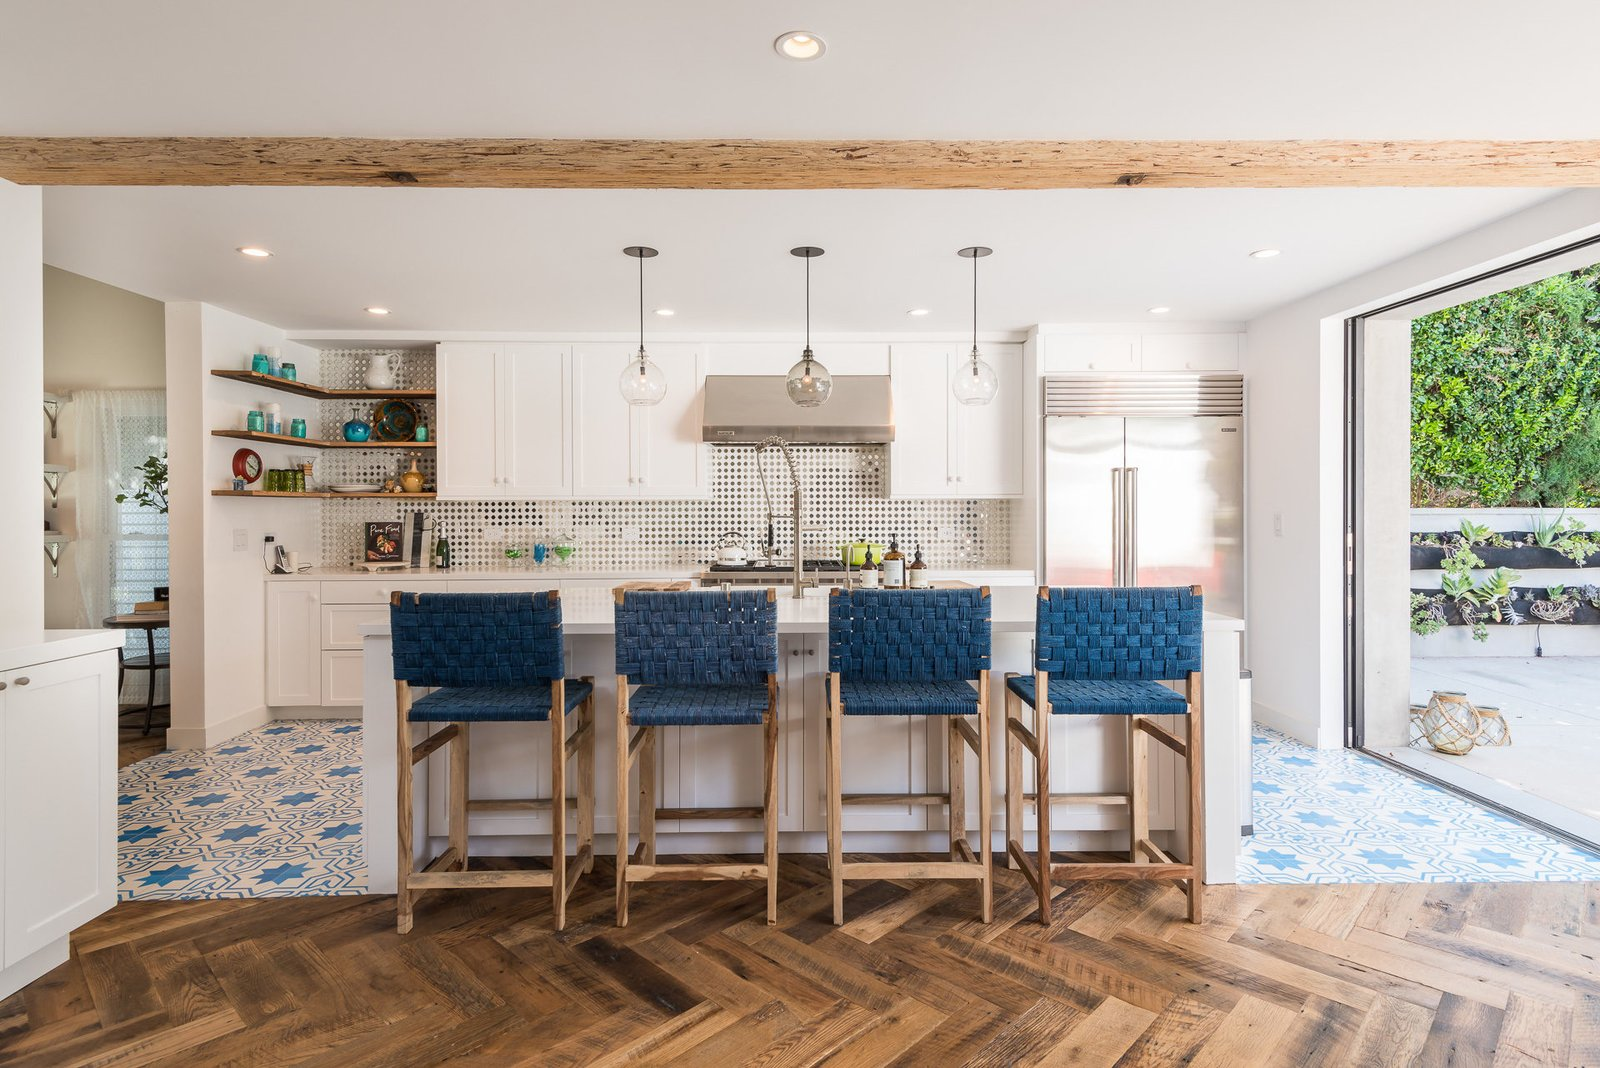 Tagged: Kitchen, Refrigerator, Range Hood, White Cabinet, and Medium Hardwood Floor.  Mid-Century Meets Boho Chic by Zillow